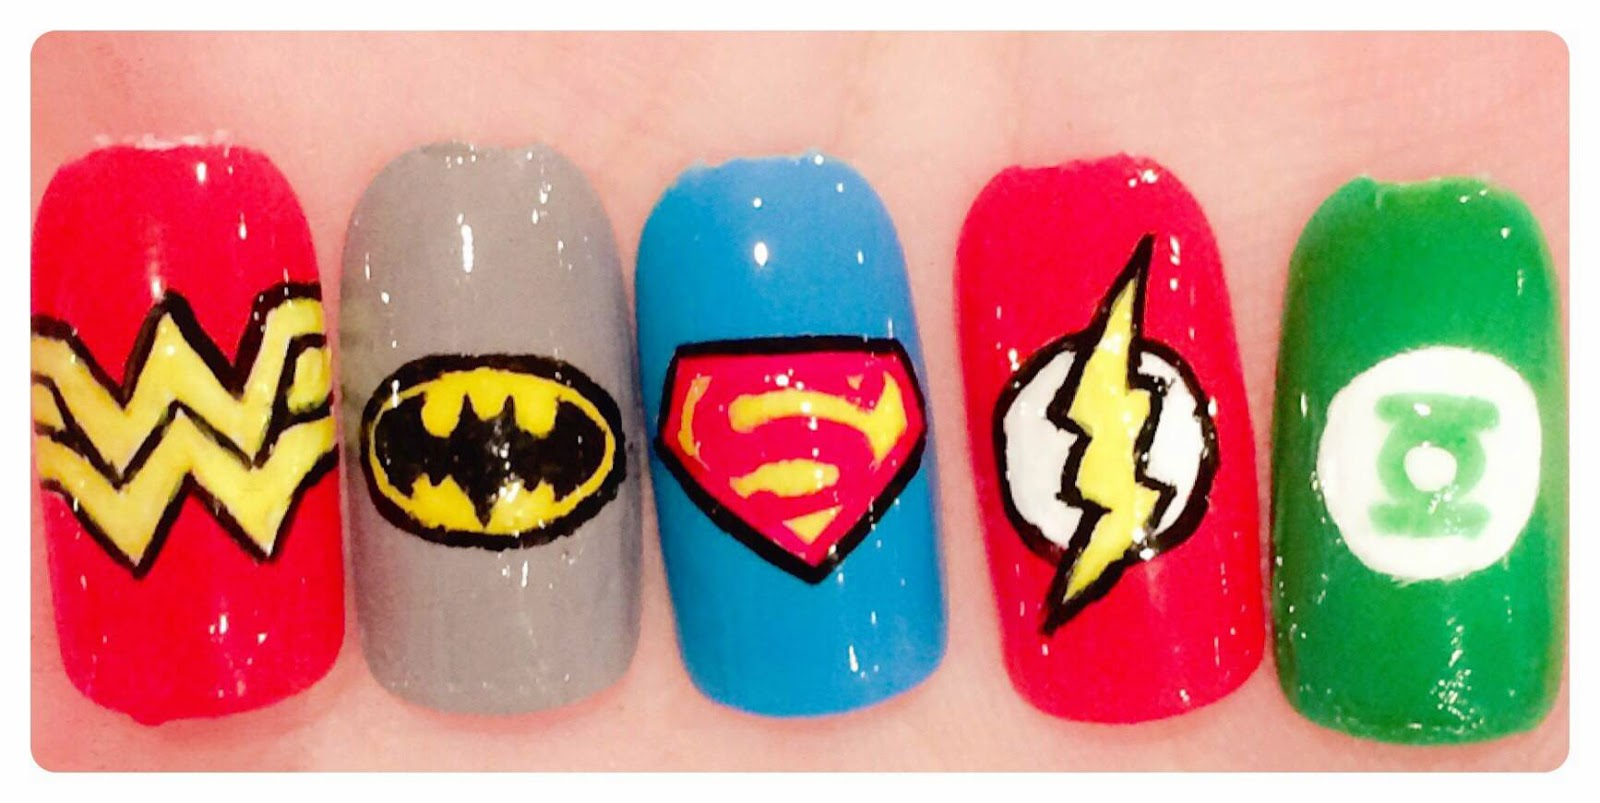 The Polish Geek: DC Comics The Justice League inspired nail art